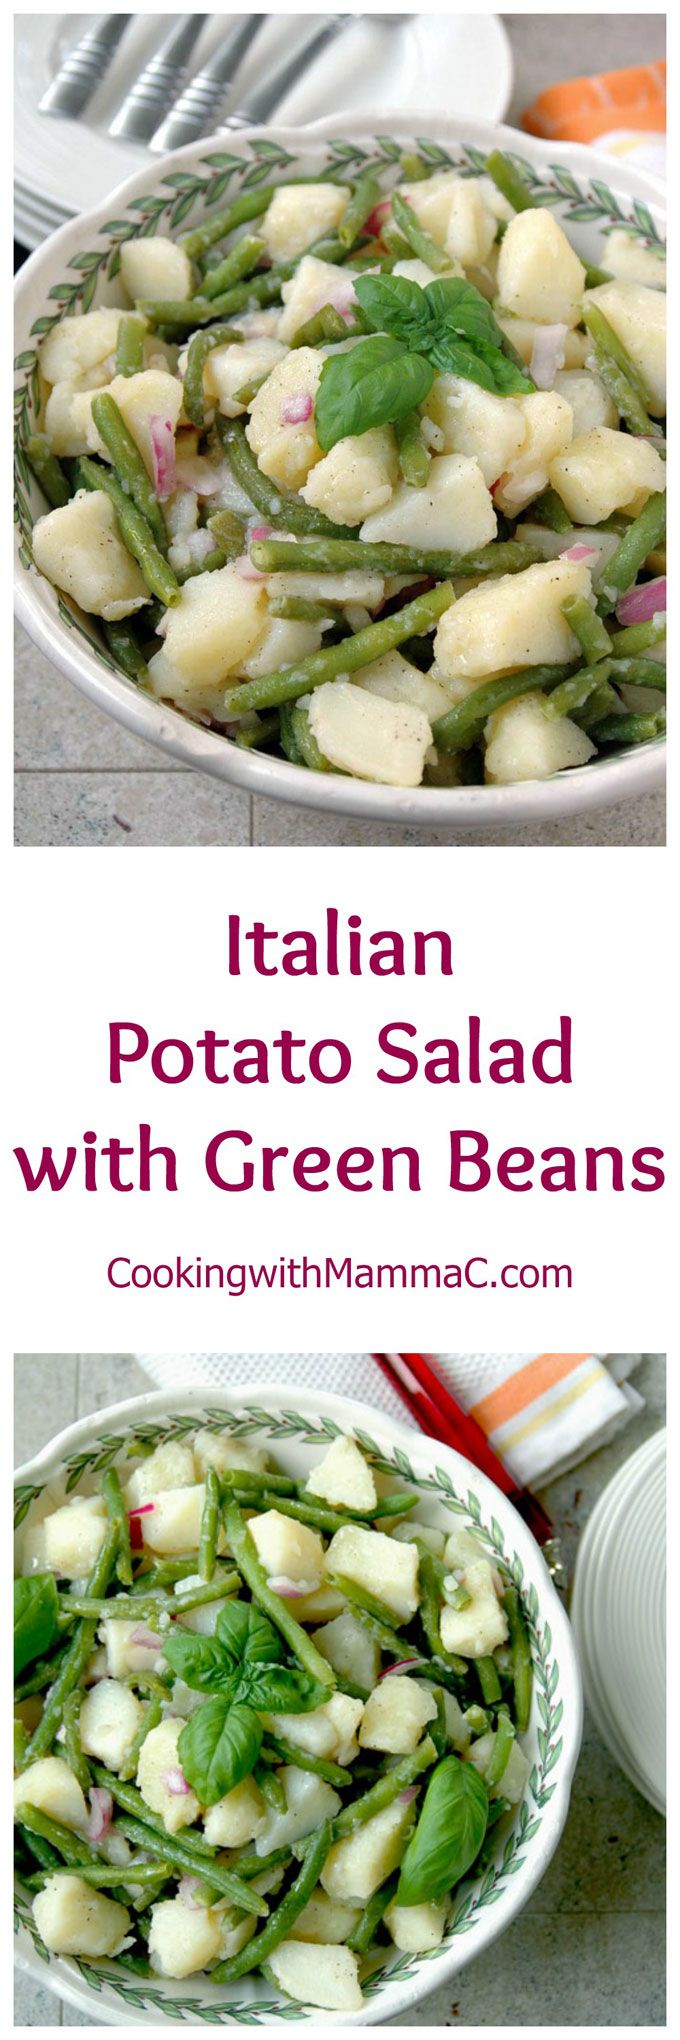 The best potato salad from Naples! Vegan, gluten free and perfect for your next BBQ or potluck!